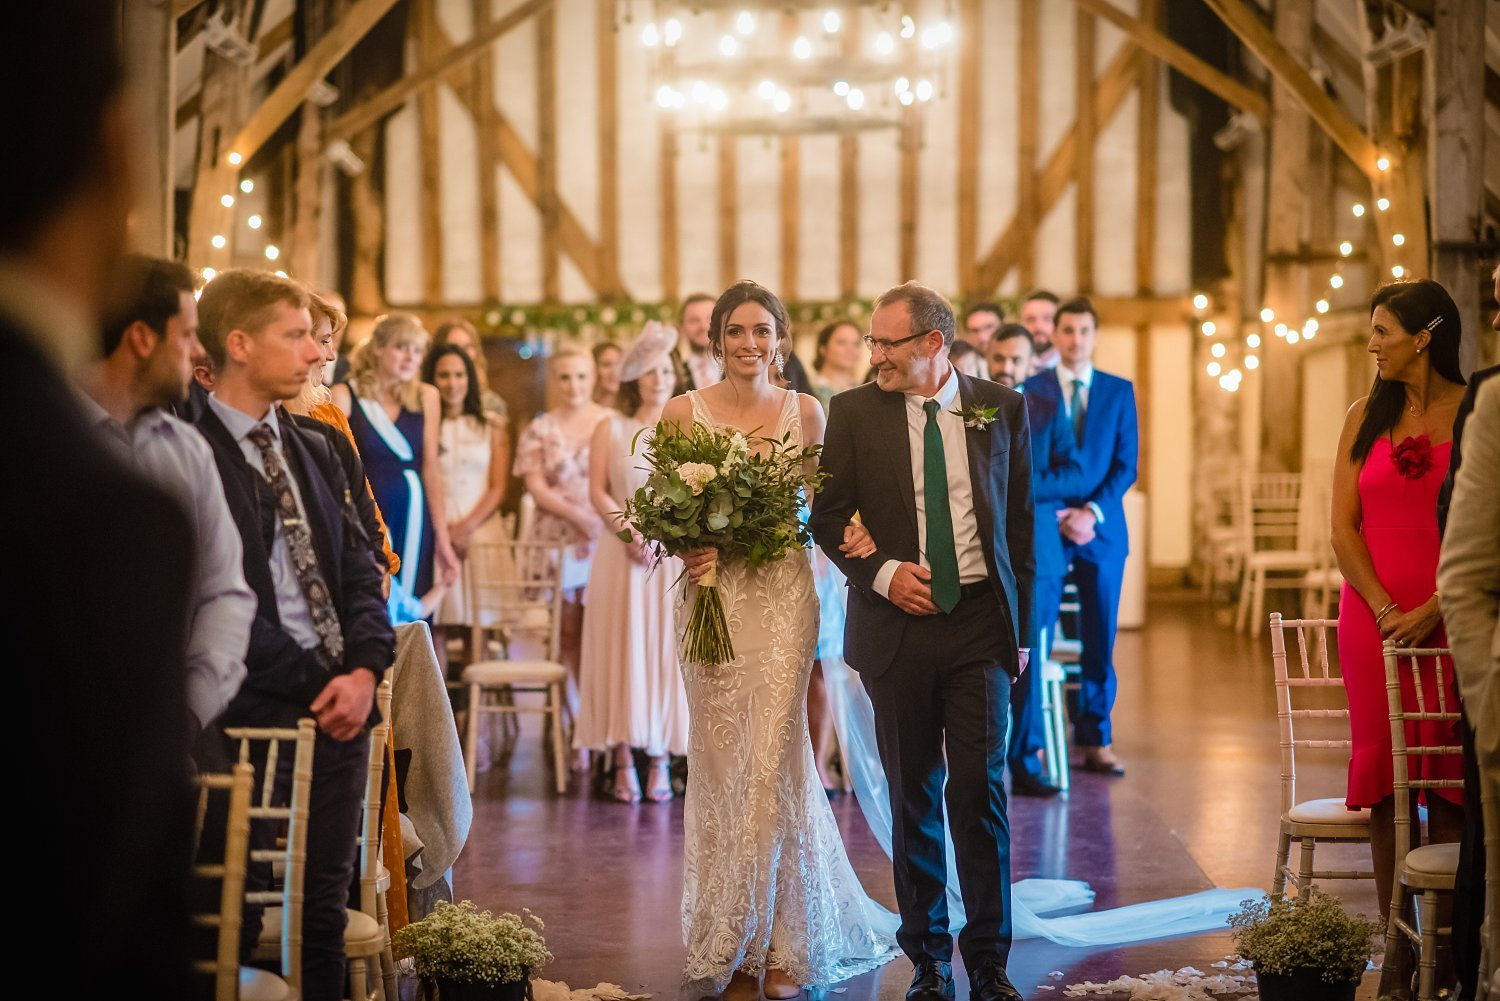 Colville Hall Weding Photographer-bride is walking down the aisle with her dad